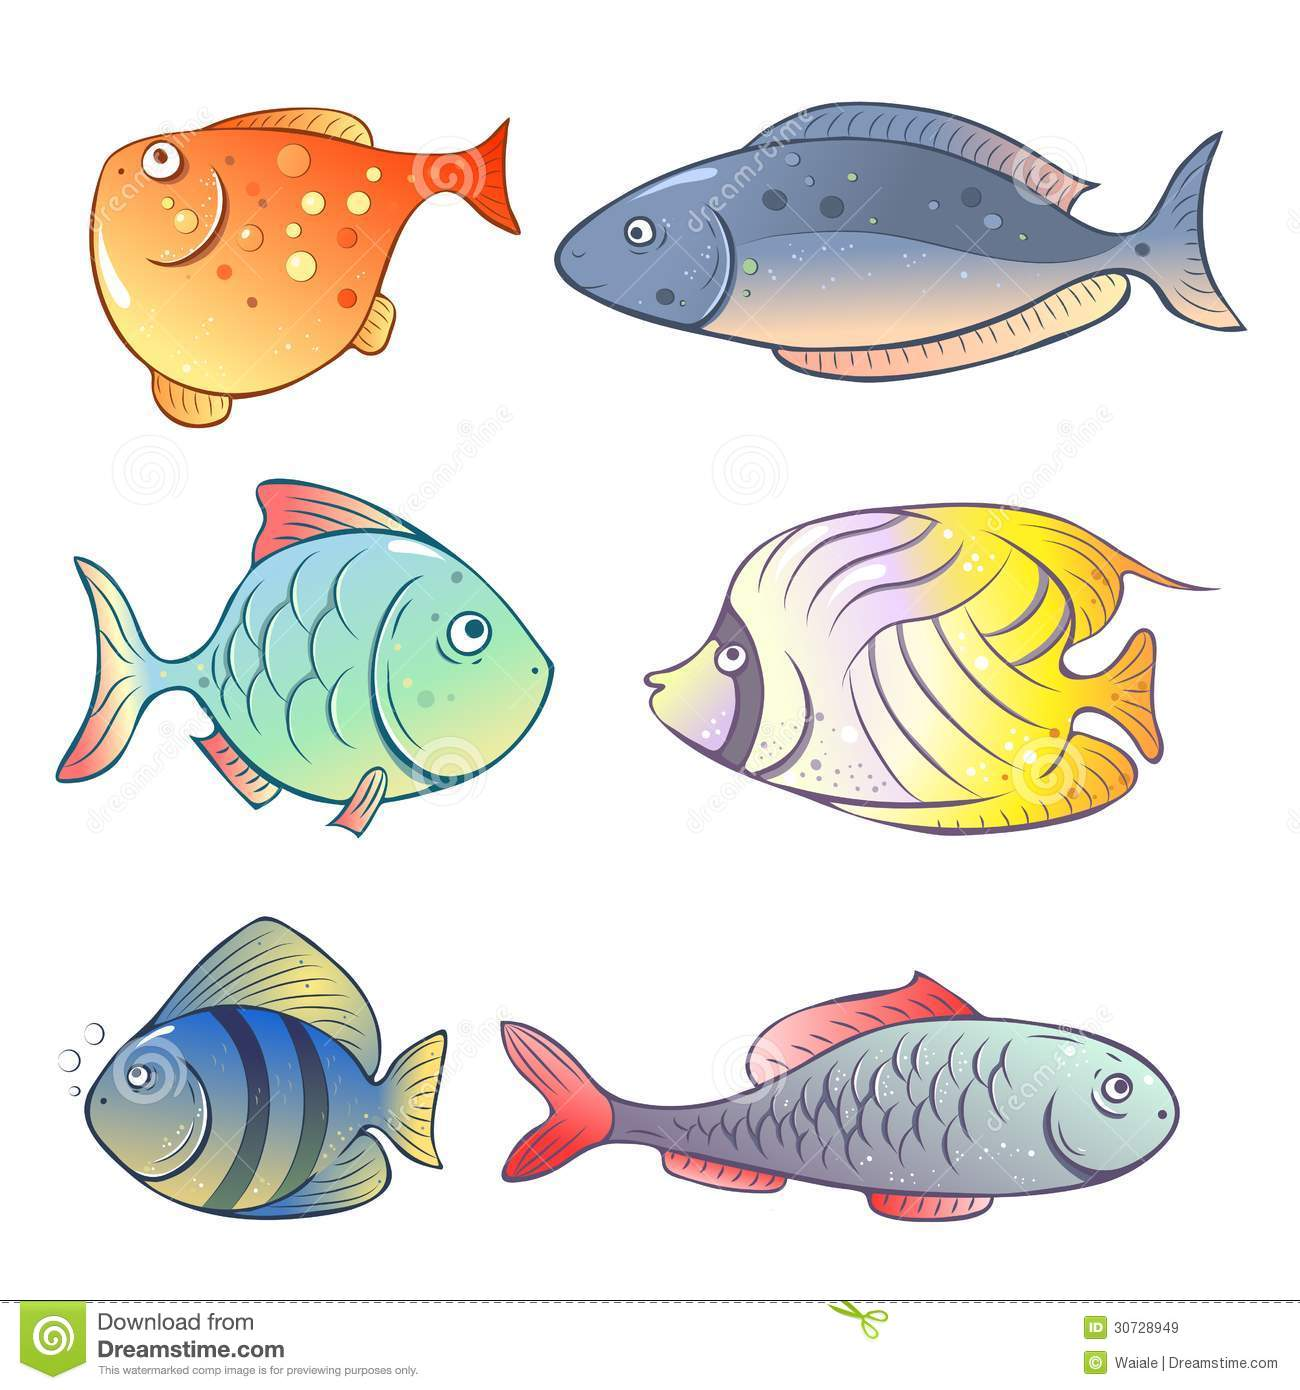 How tropical fish have sex